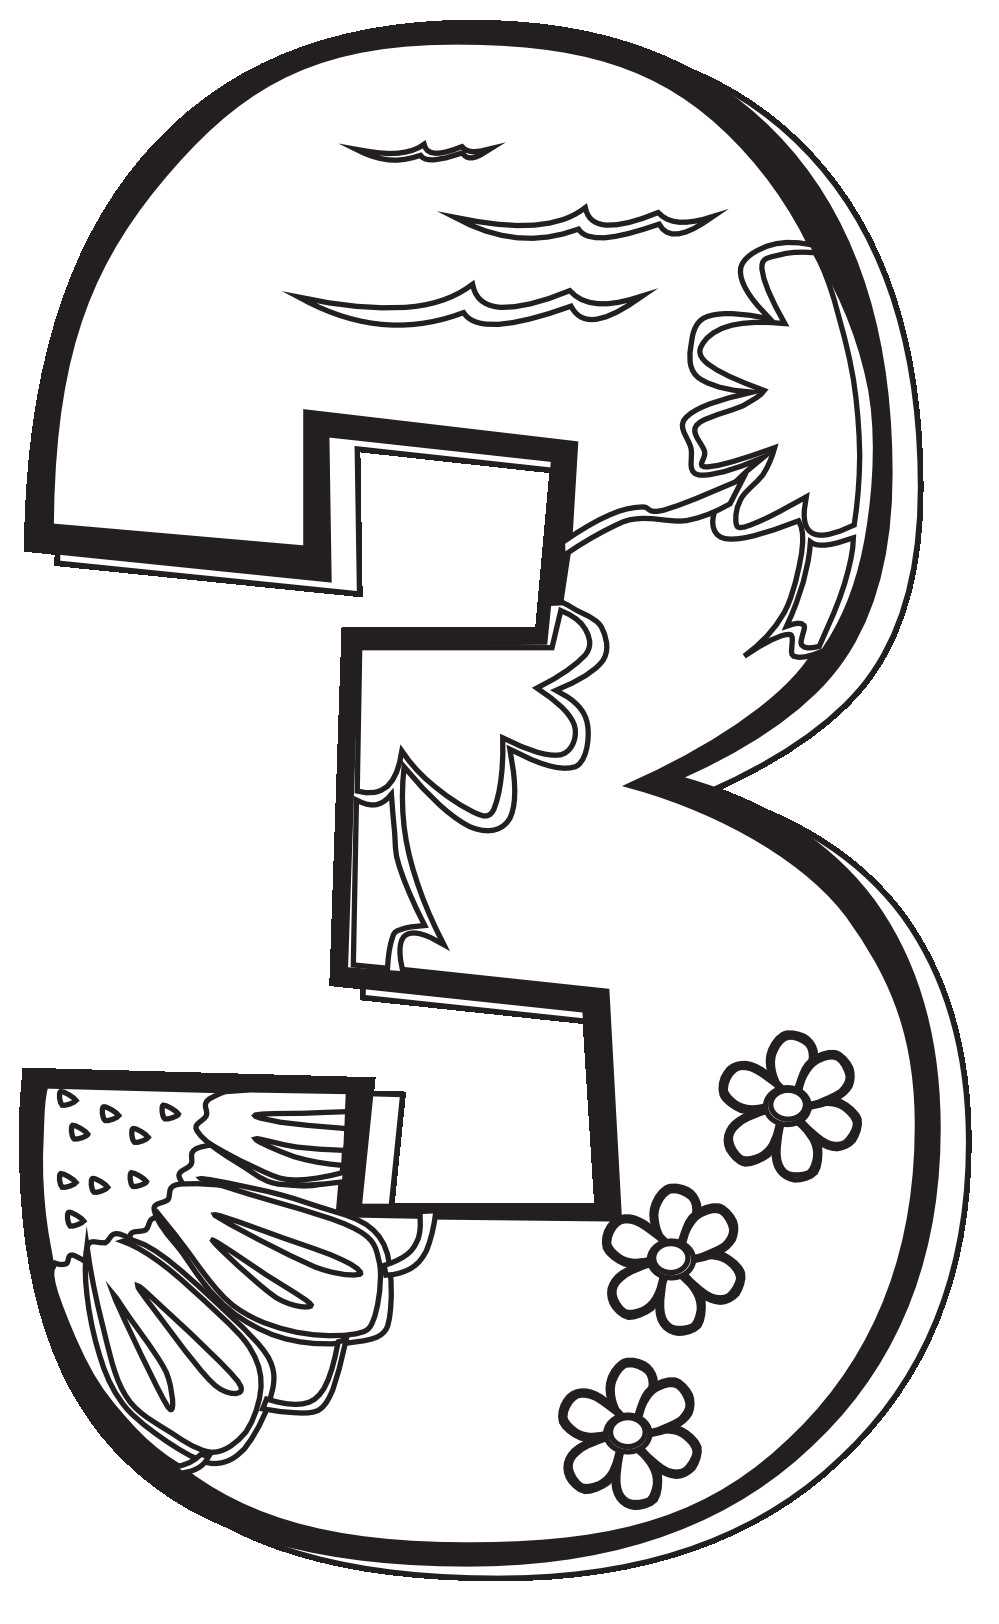 Day 3 Of Creation Coloring Pages at GetDrawings | Free ...